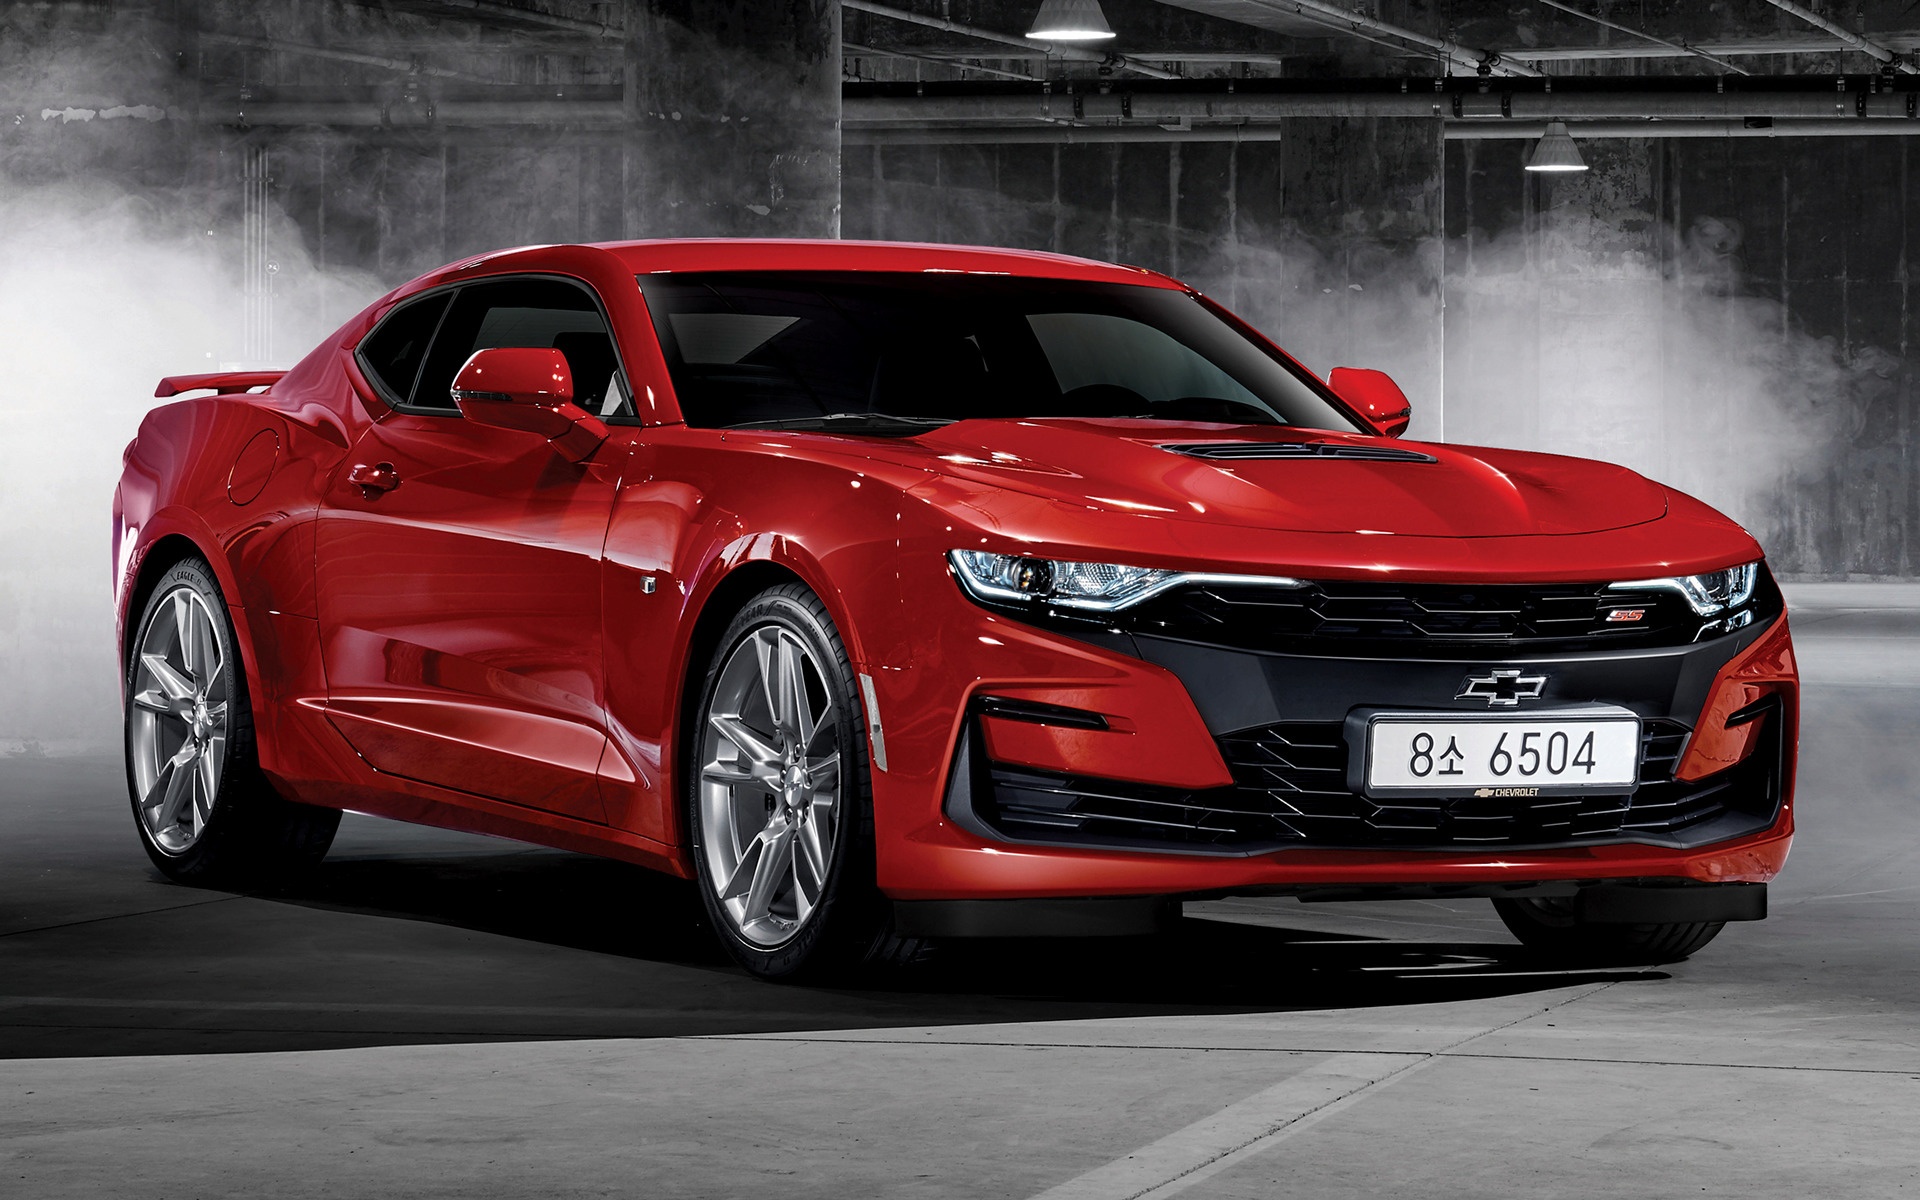 2019 Chevrolet Camaro SS (KR) - Wallpapers and HD Images ...